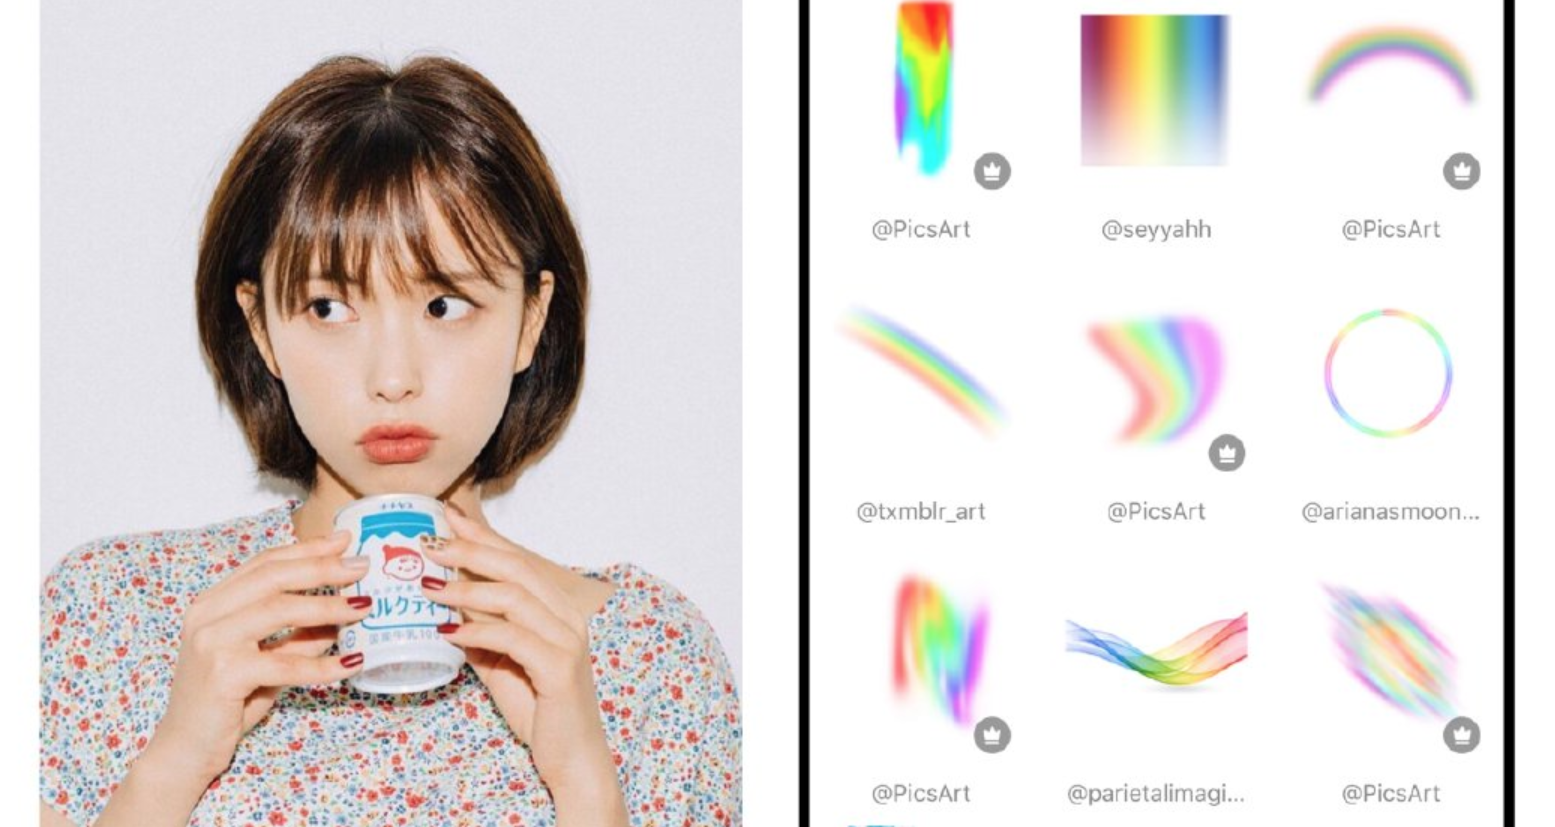 PicsArt hits 130 million MAUs as Chinese flock to its photo-editing app | TechCrunch